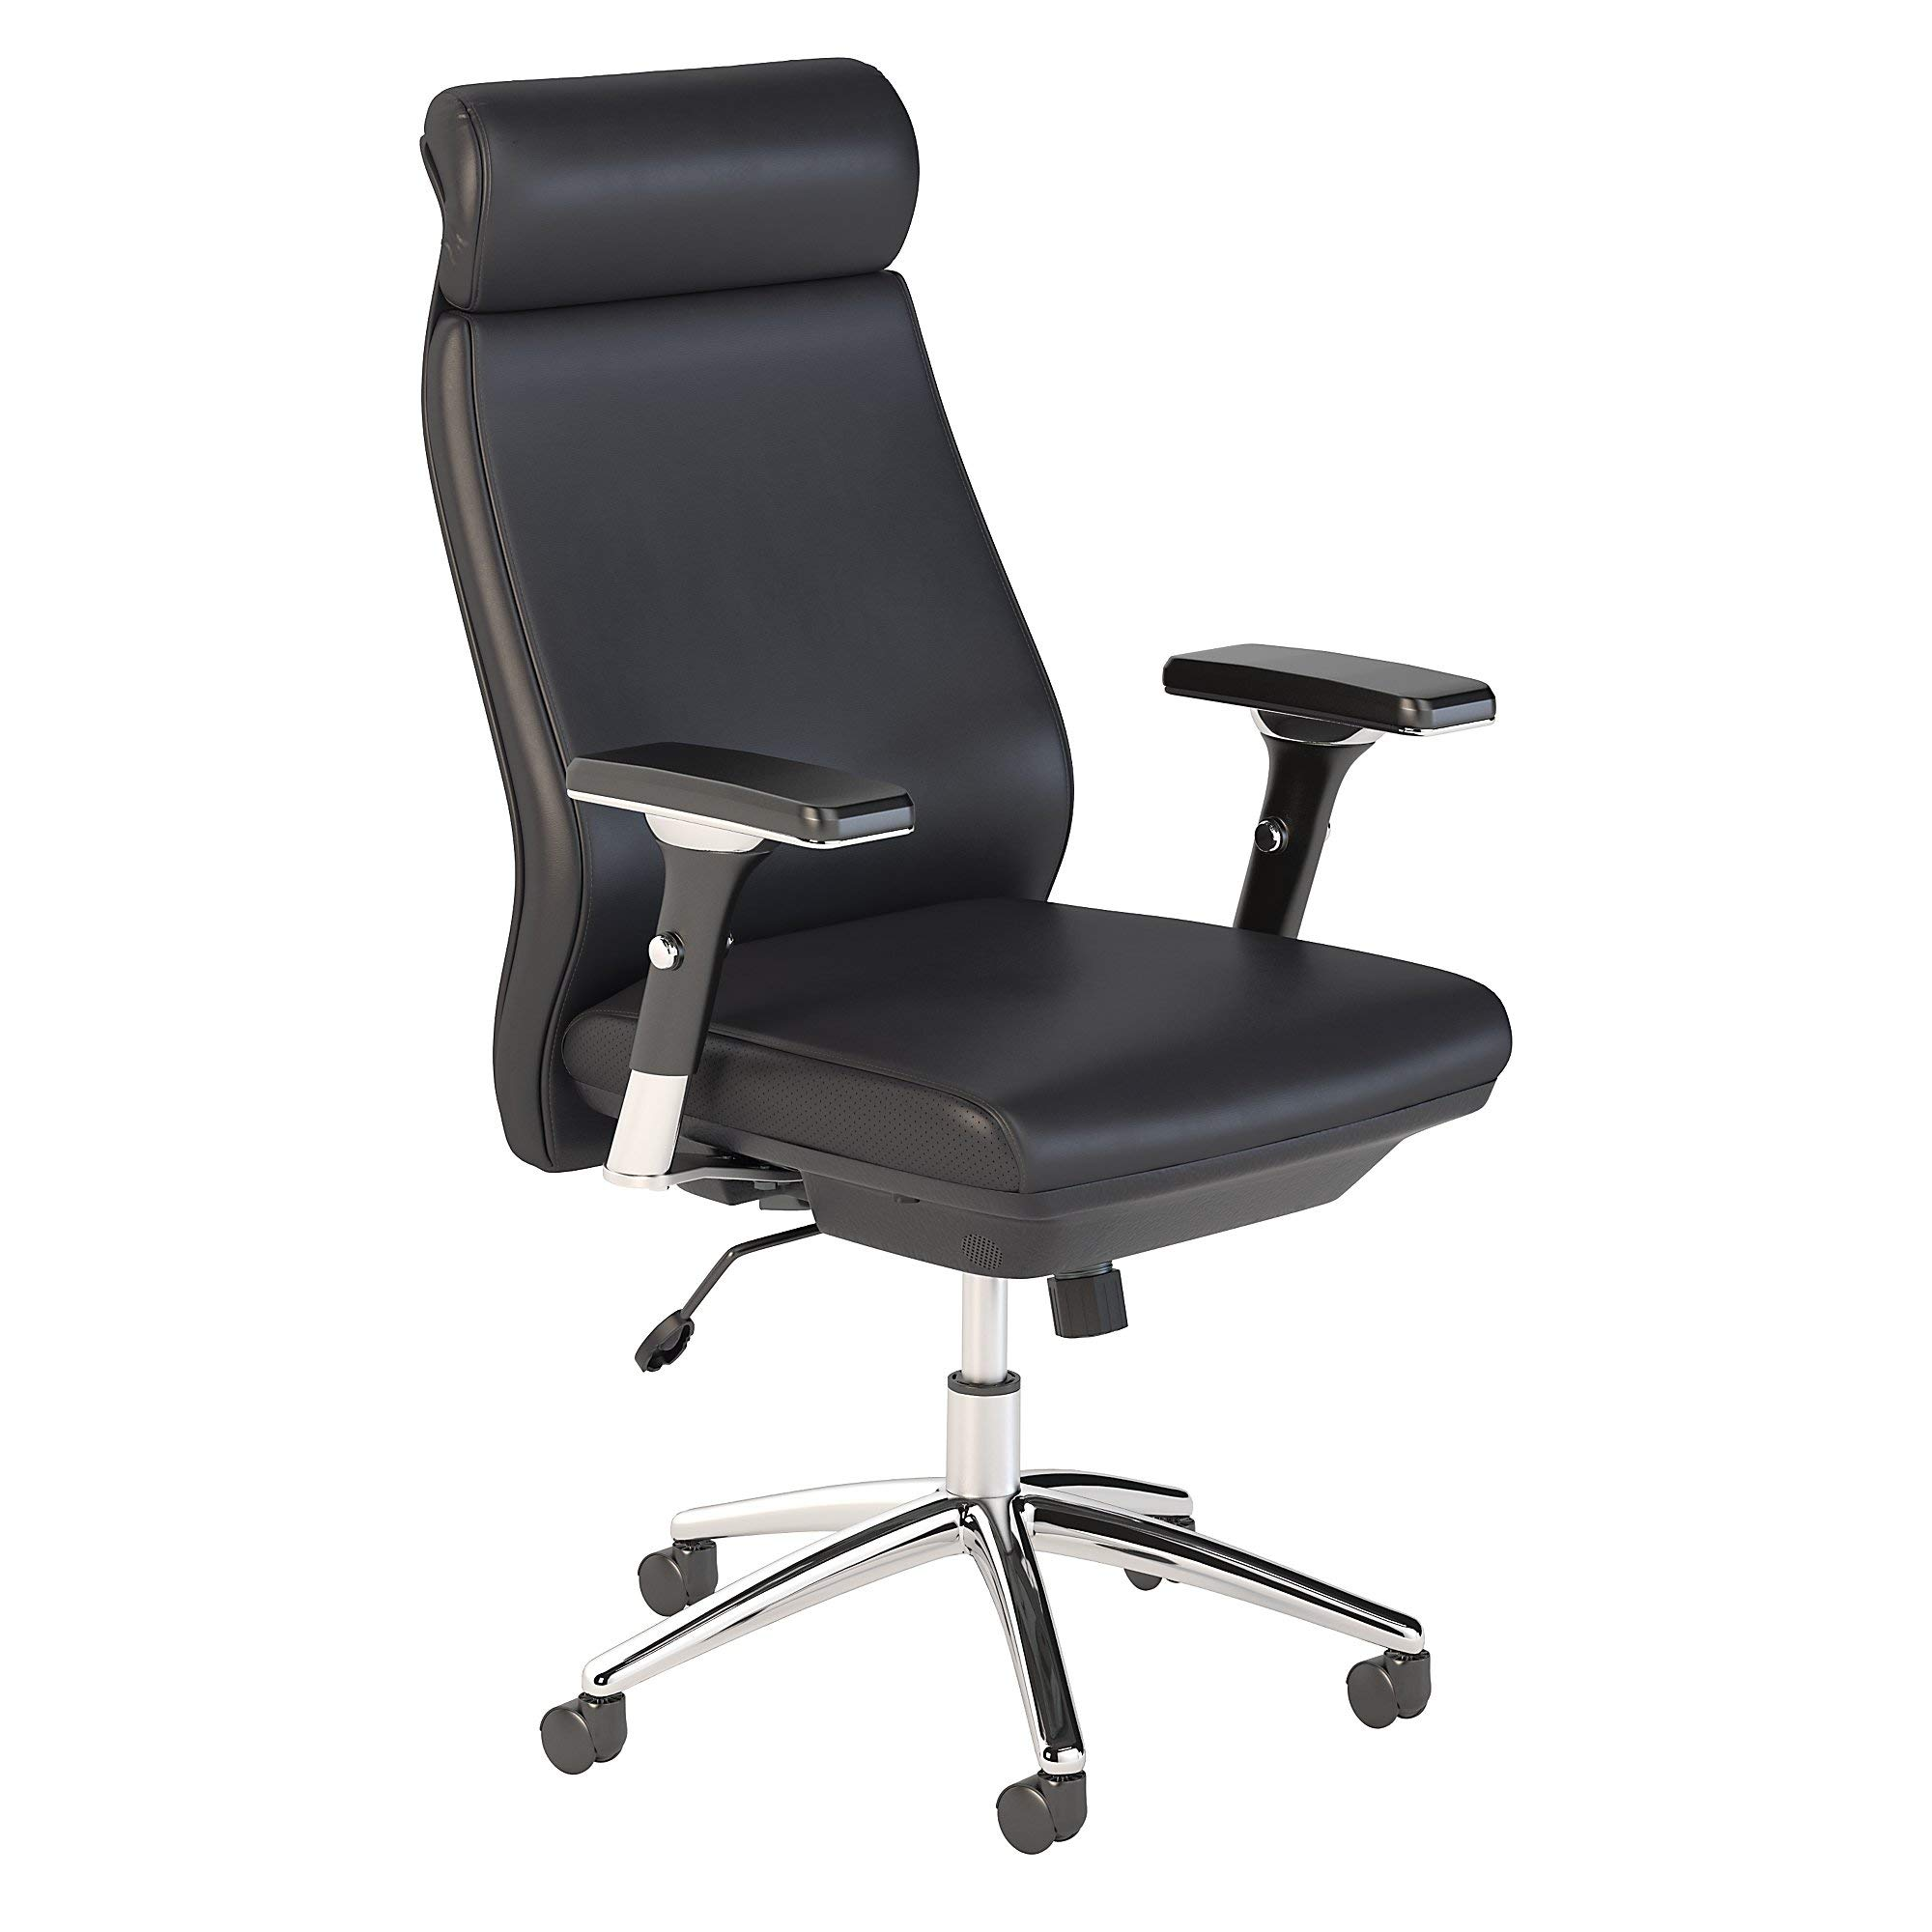 Bush Business Furniture Metropolis High Back Leather Executive Office Chair in Black by Bush Business Furniture